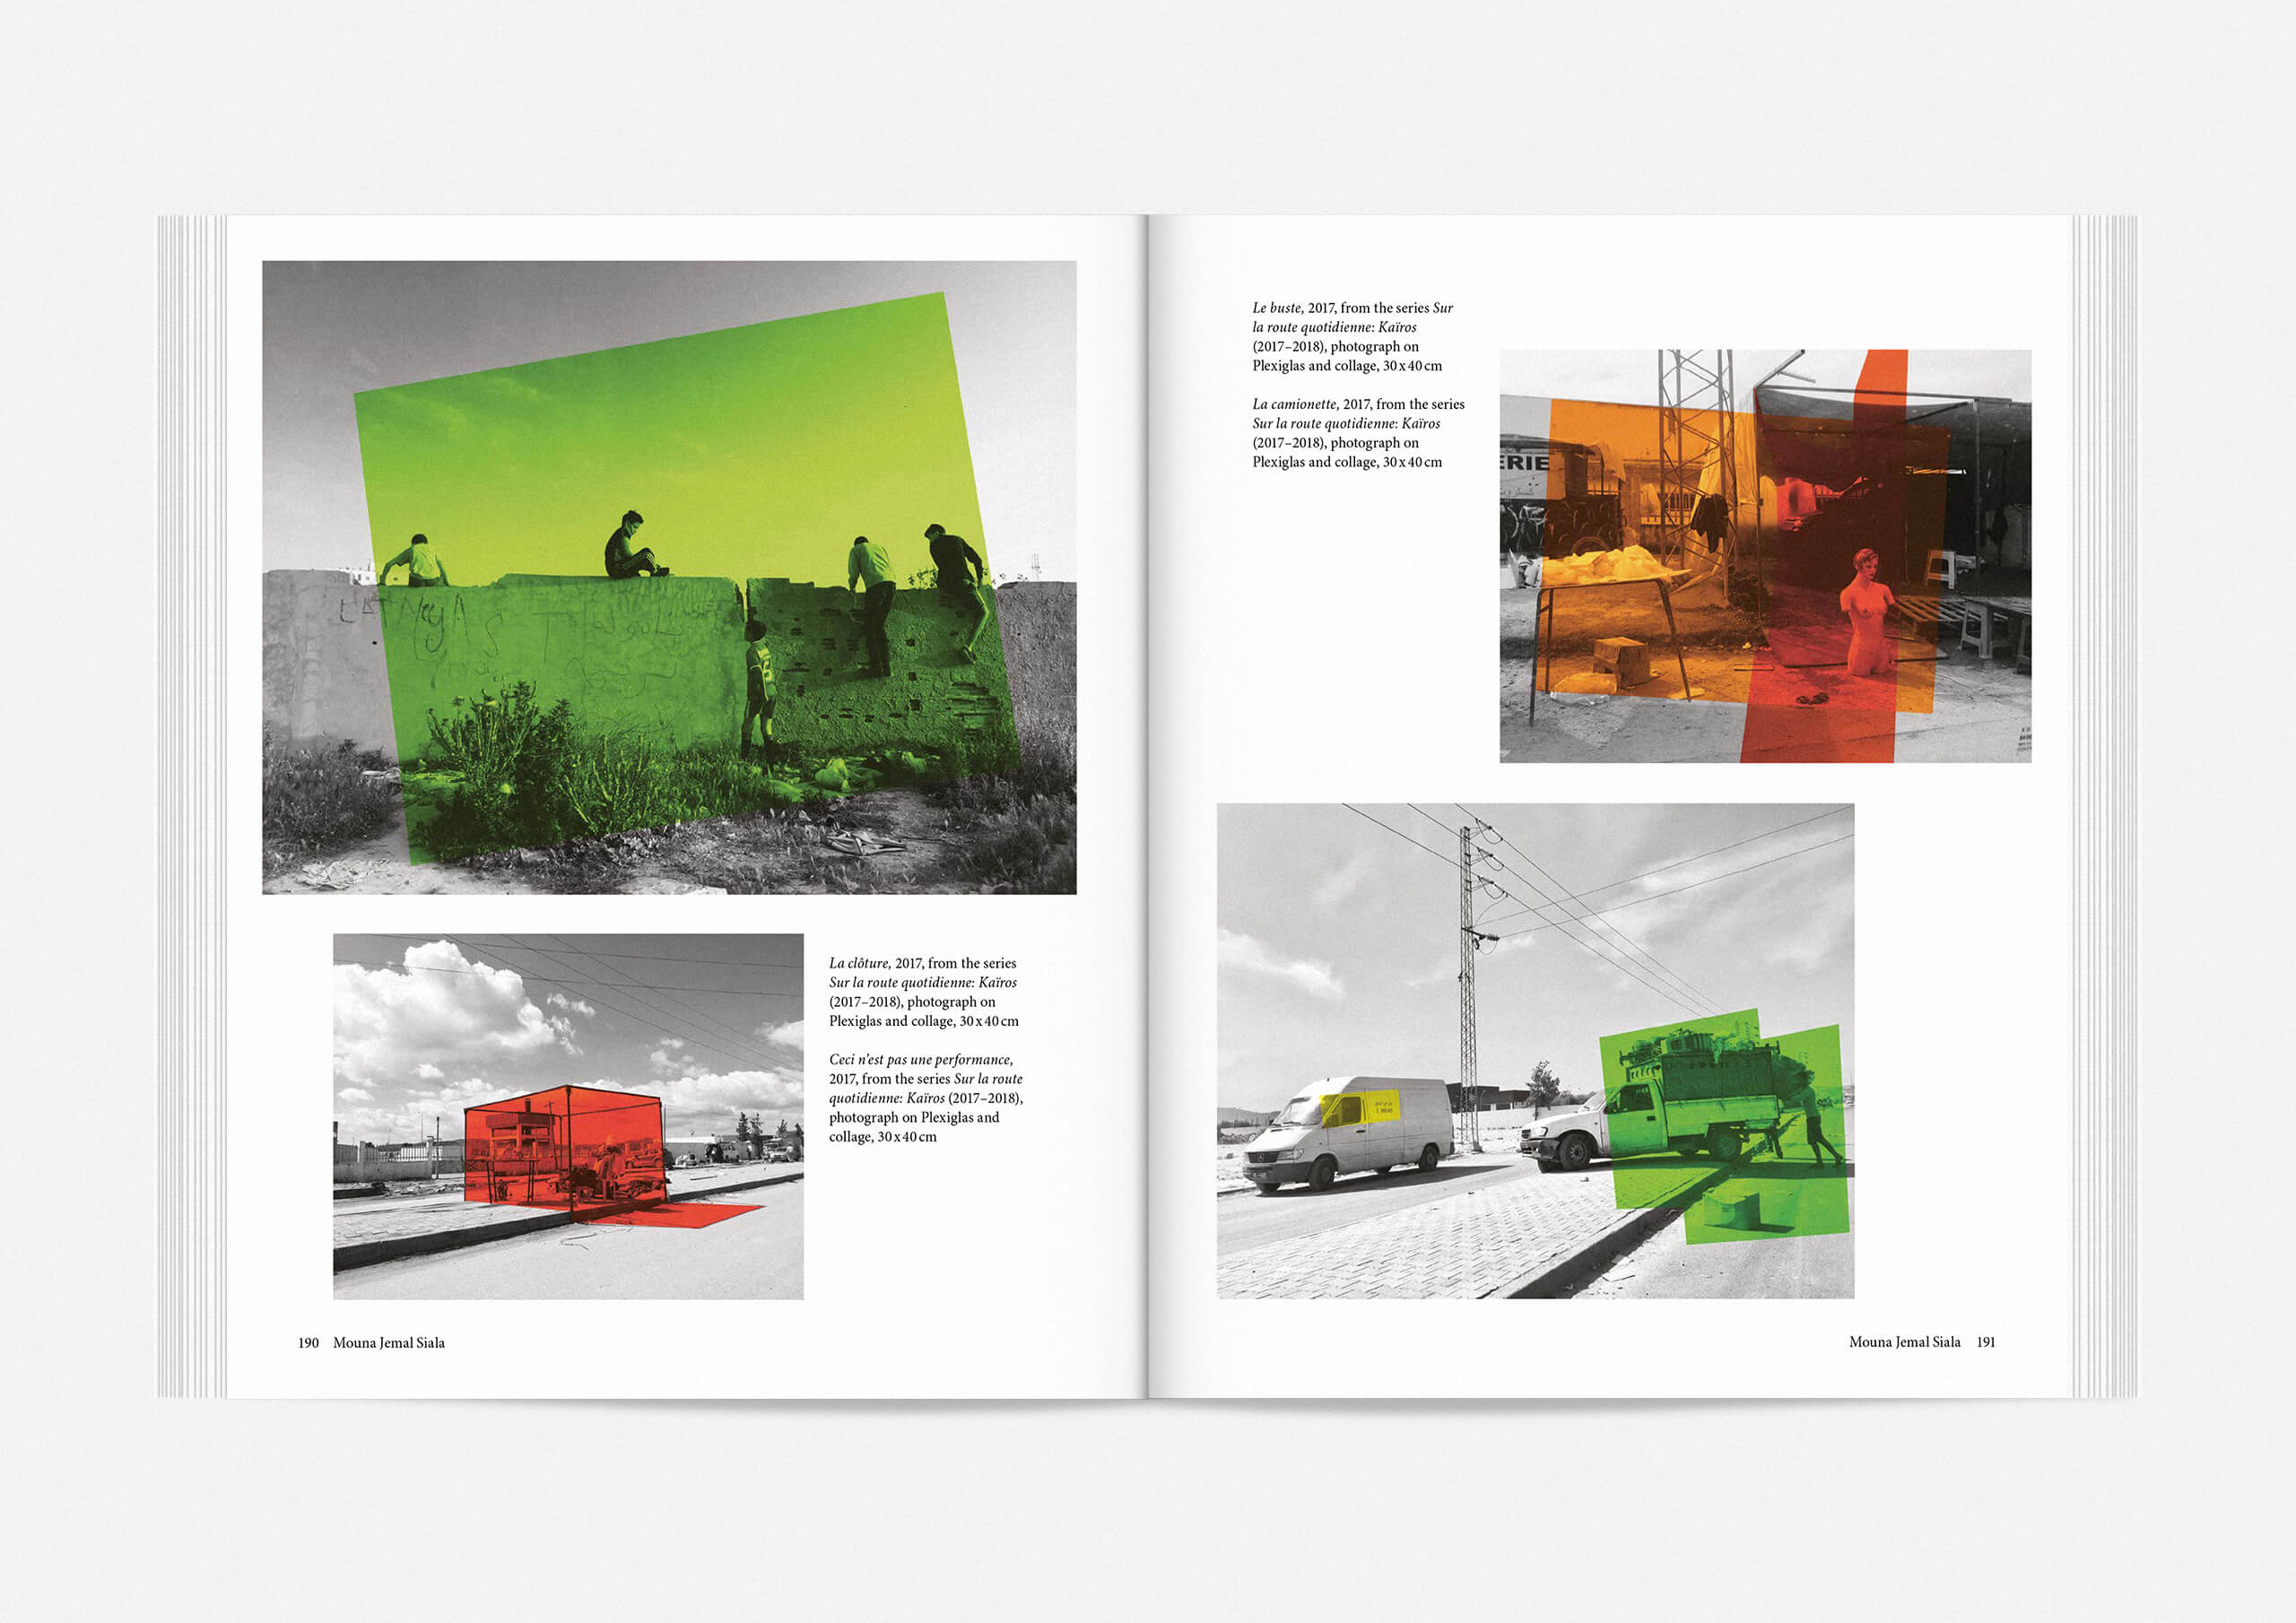 https://neuegestaltung.de/media/pages/clients/protocollum-issue-no-05/c6f4823c58-1597415142/protocollum-5-page-190191-ng.jpg